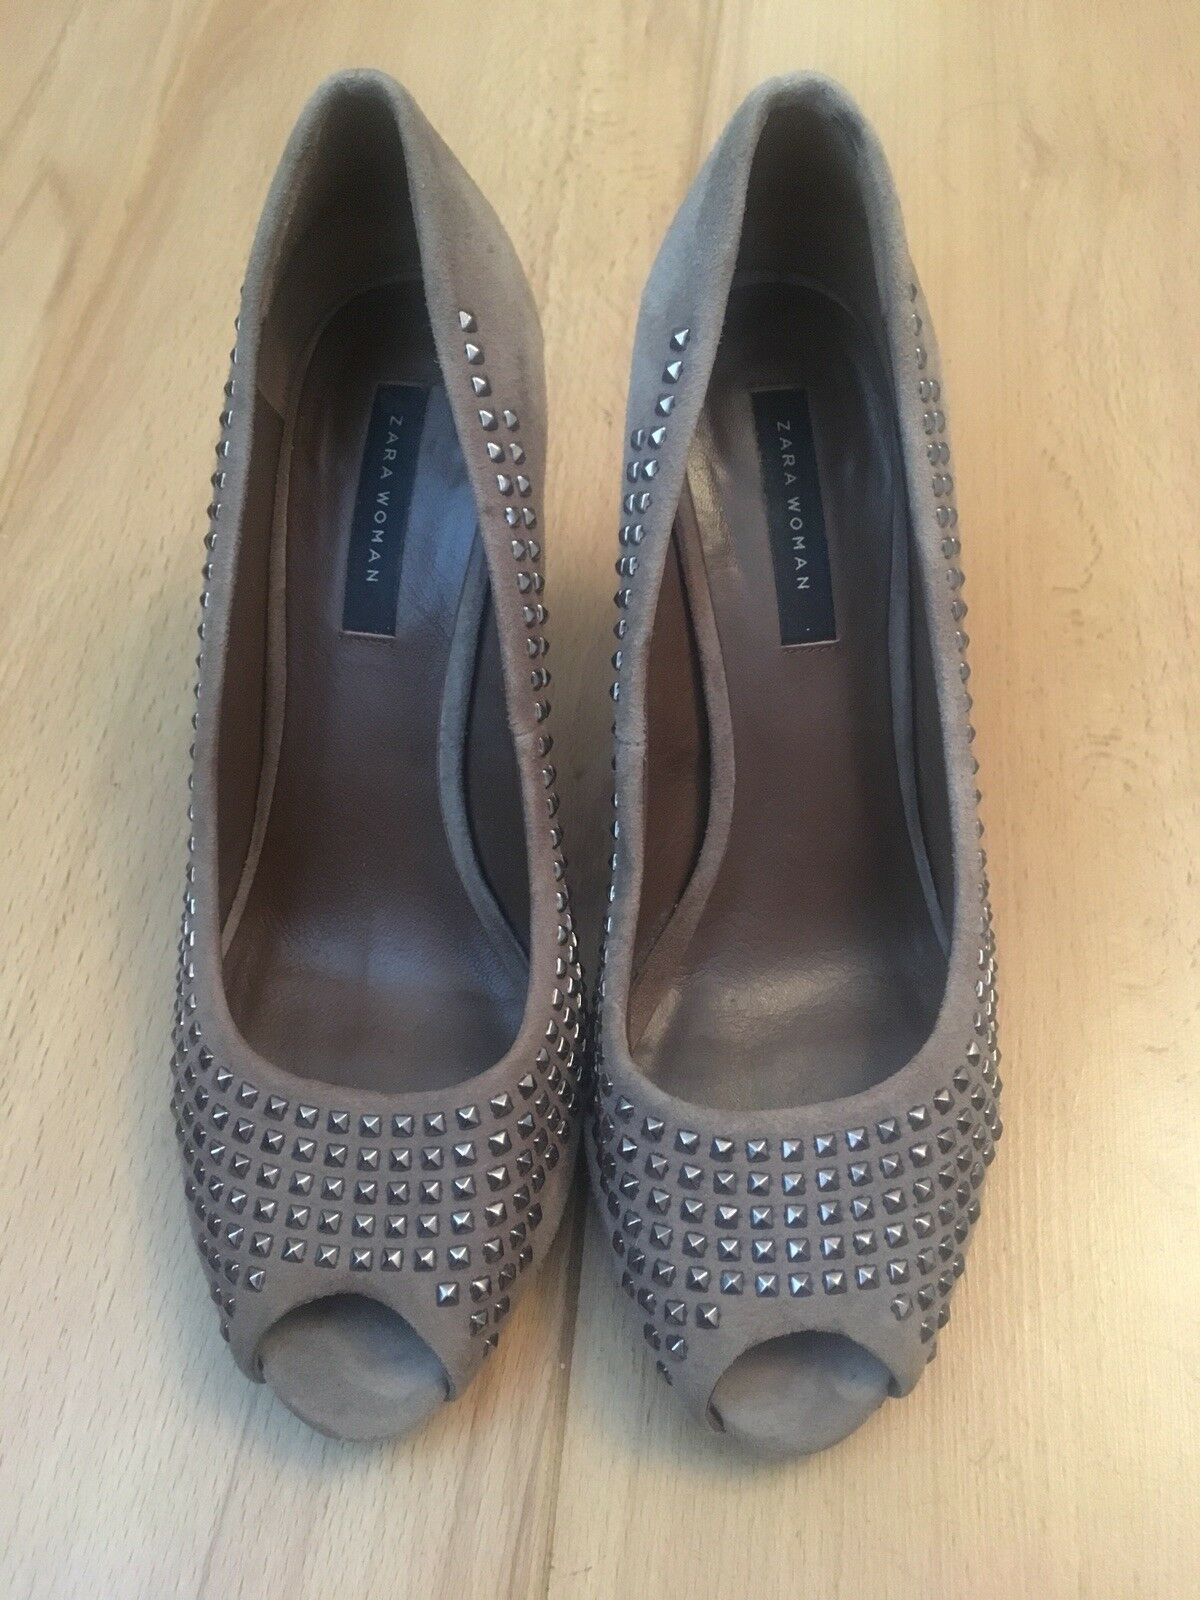 ZARA WOMAN TAUPE SUEDE PEEP TOE STUDDED SHOES VGC SANDALS HEELS SIZE 39/ VGC SHOES 06fd45